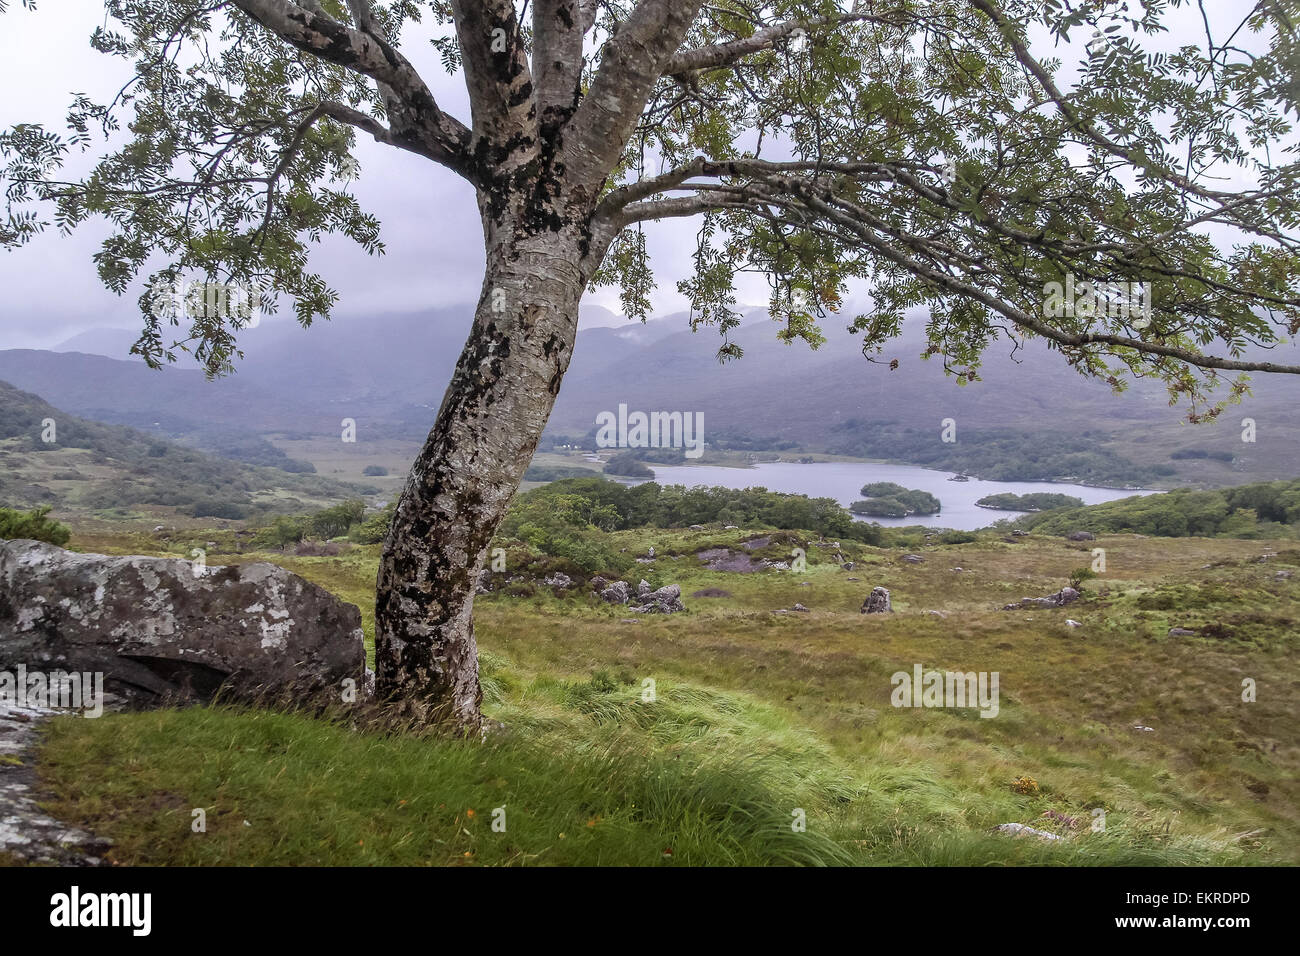 Tree and landscape at Ladies View, Killarney National Park, Iveragh Peninsula, County Kerry, Ireland - Stock Image